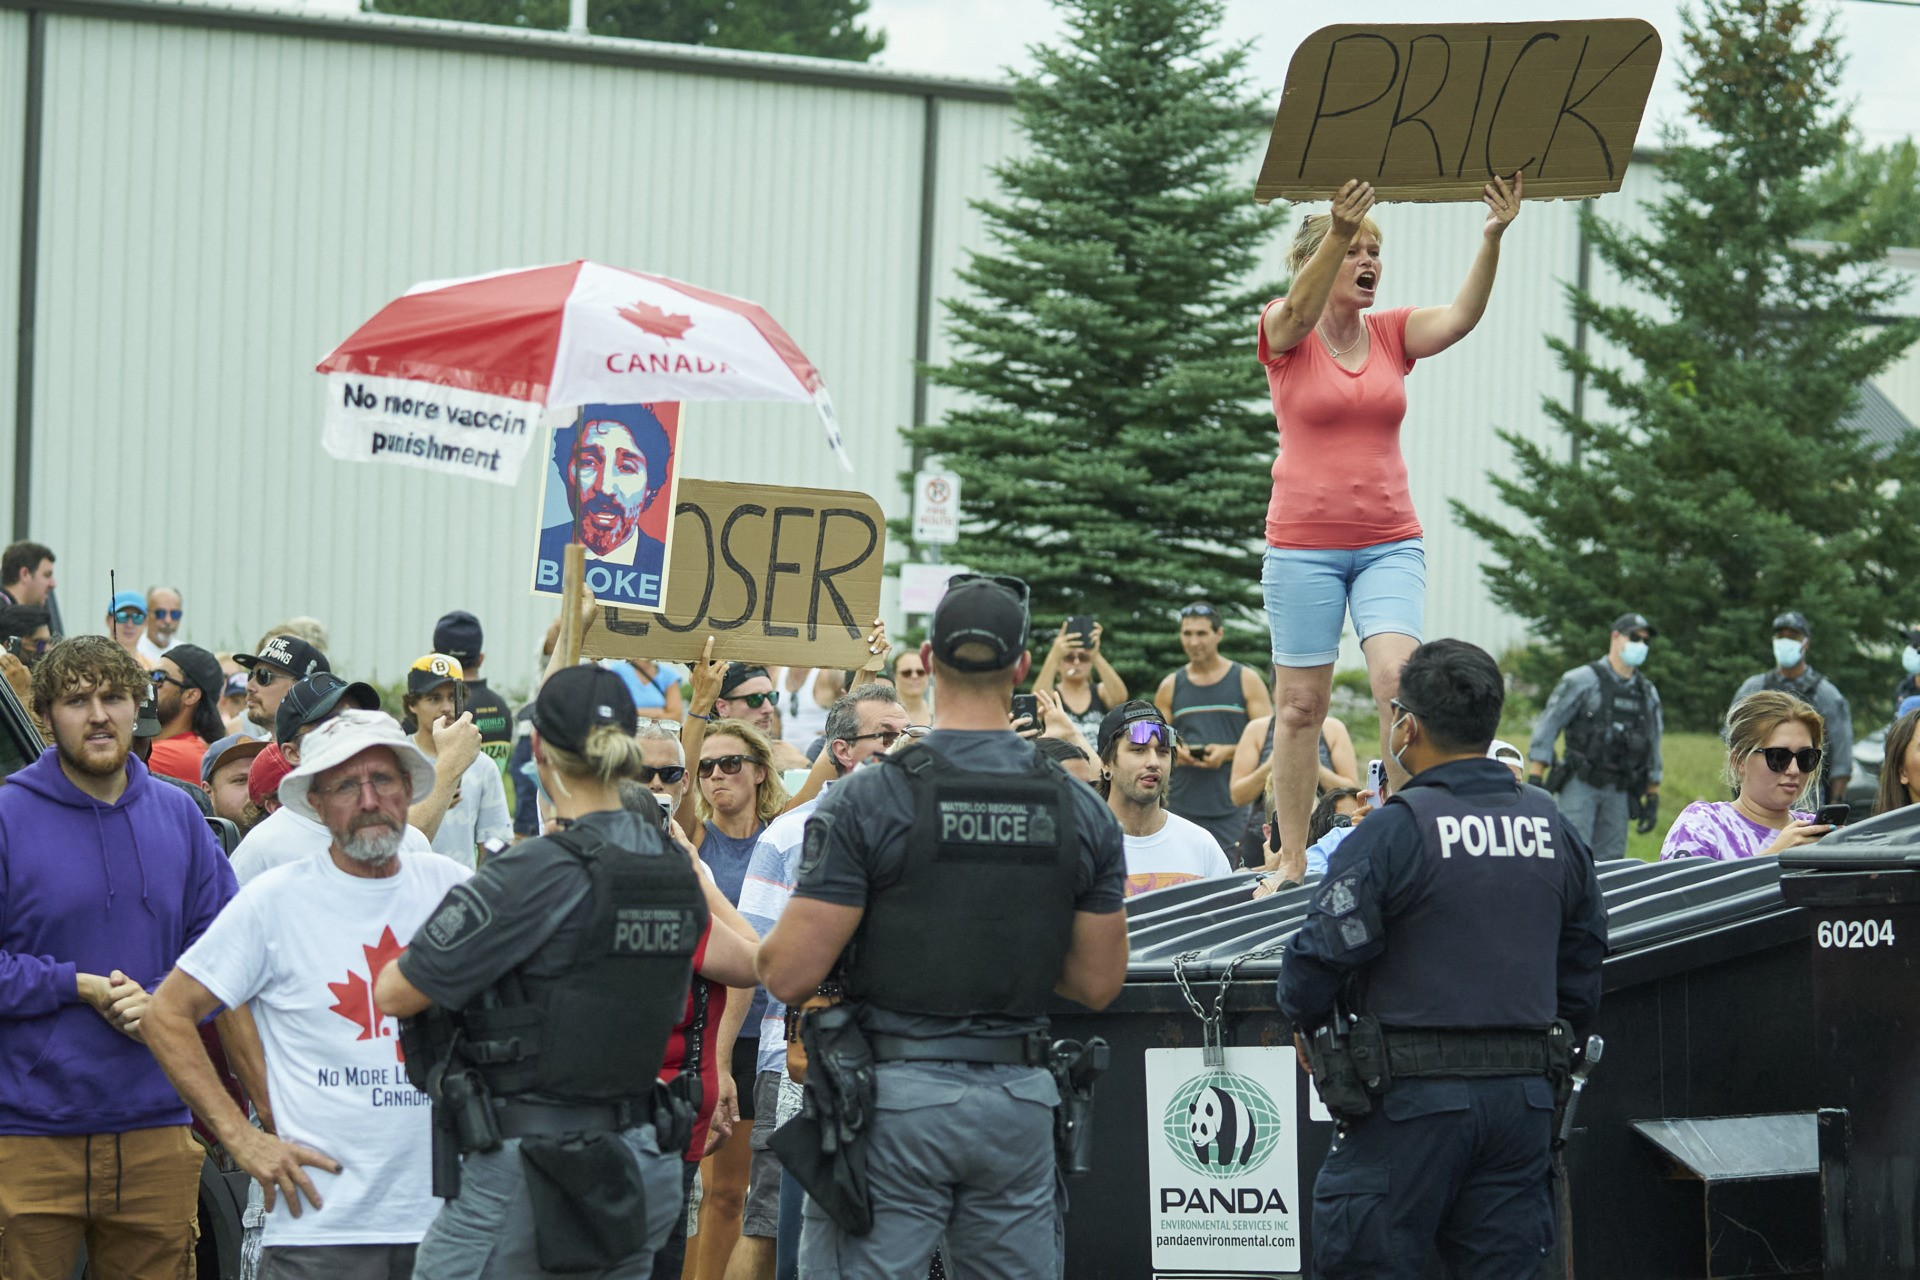 Protestors heckle Prime Minister Justin Trudeau during a Liberal campaign event at VeriForm Inc. in Cambridge, Ontario, on August 29, 2021. - Canadian Prime Minister Justin Trudeau's Liberal Party appears to be ceding popularity to its Conservative rivals, according to polls published August 28, 2021, with early elections only weeks away. (Photo by Geoff Robins / AFP) (Photo by GEOFF ROBINS/AFP via Getty Images)